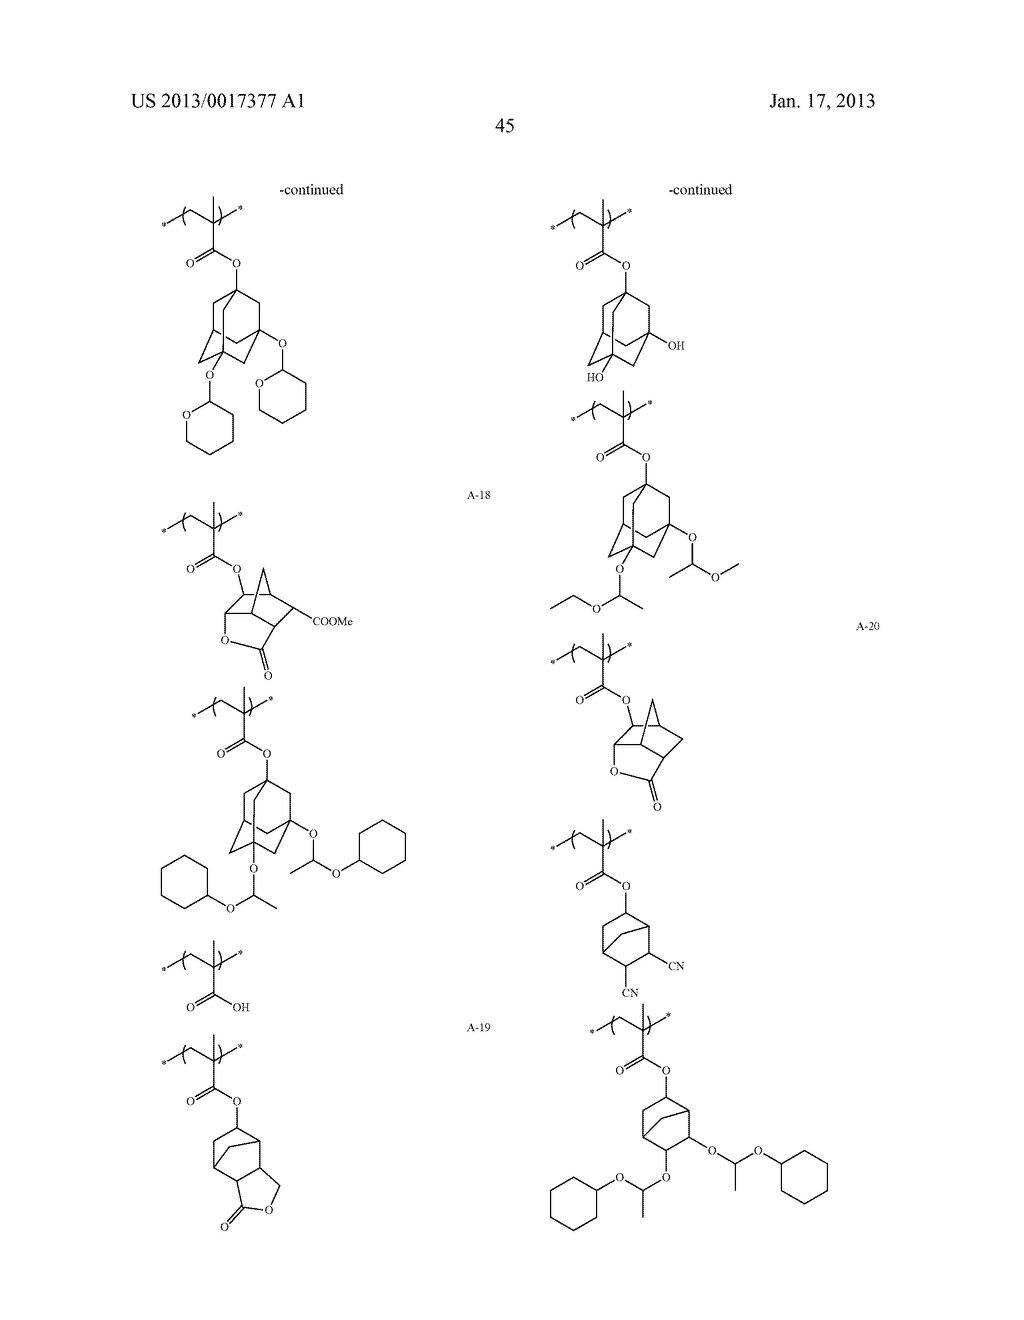 ACTINIC-RAY- OR RADIATION-SENSITIVE RESIN COMPOSITION AND METHOD OF     FORMING PATTERN USING THE SAMEAANM Kataoka; ShoheiAACI ShizuokaAACO JPAAGP Kataoka; Shohei Shizuoka JPAANM Iwato; KaoruAACI ShizuokaAACO JPAAGP Iwato; Kaoru Shizuoka JPAANM Kamimura; SouAACI ShizuokaAACO JPAAGP Kamimura; Sou Shizuoka JPAANM Tsuchihashi; ToruAACI ShizuokaAACO JPAAGP Tsuchihashi; Toru Shizuoka JPAANM Enomoto; YuichiroAACI ShizuokaAACO JPAAGP Enomoto; Yuichiro Shizuoka JPAANM Fujii; KanaAACI ShizuokaAACO JPAAGP Fujii; Kana Shizuoka JPAANM Mizutani; KazuyoshiAACI ShizuokaAACO JPAAGP Mizutani; Kazuyoshi Shizuoka JPAANM Tarutani; ShinjiAACI ShizuokaAACO JPAAGP Tarutani; Shinji Shizuoka JPAANM Kato; KeitaAACI ShizuokaAACO JPAAGP Kato; Keita Shizuoka JP - diagram, schematic, and image 46